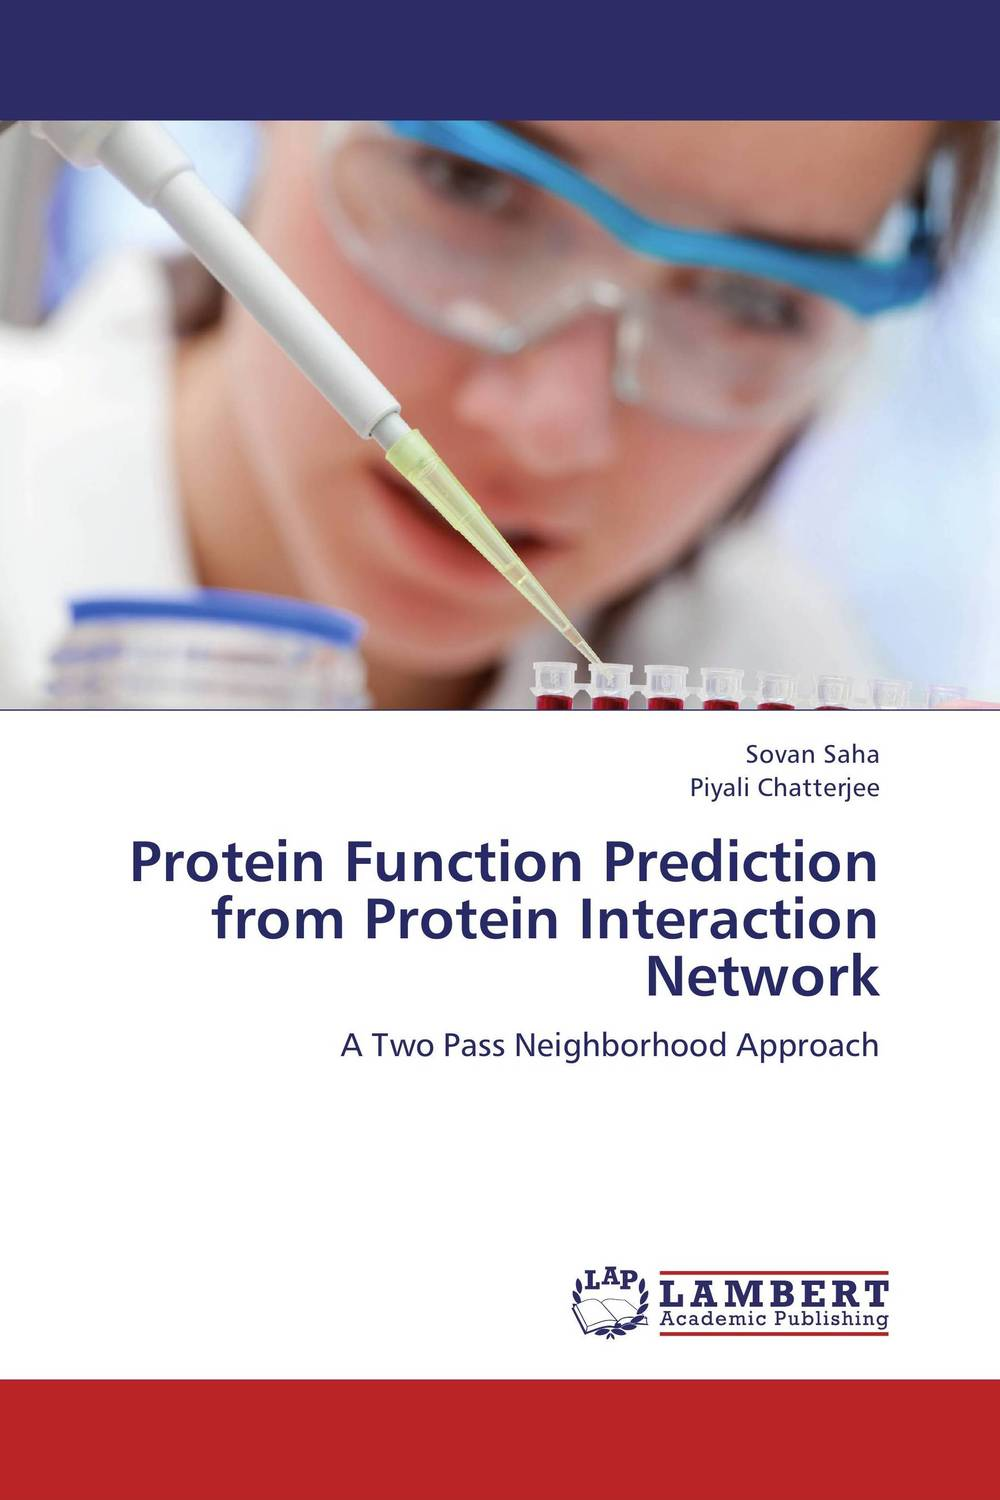 Protein Function Prediction from Protein Interaction Network bioinformatic approaches to structure and function of protein